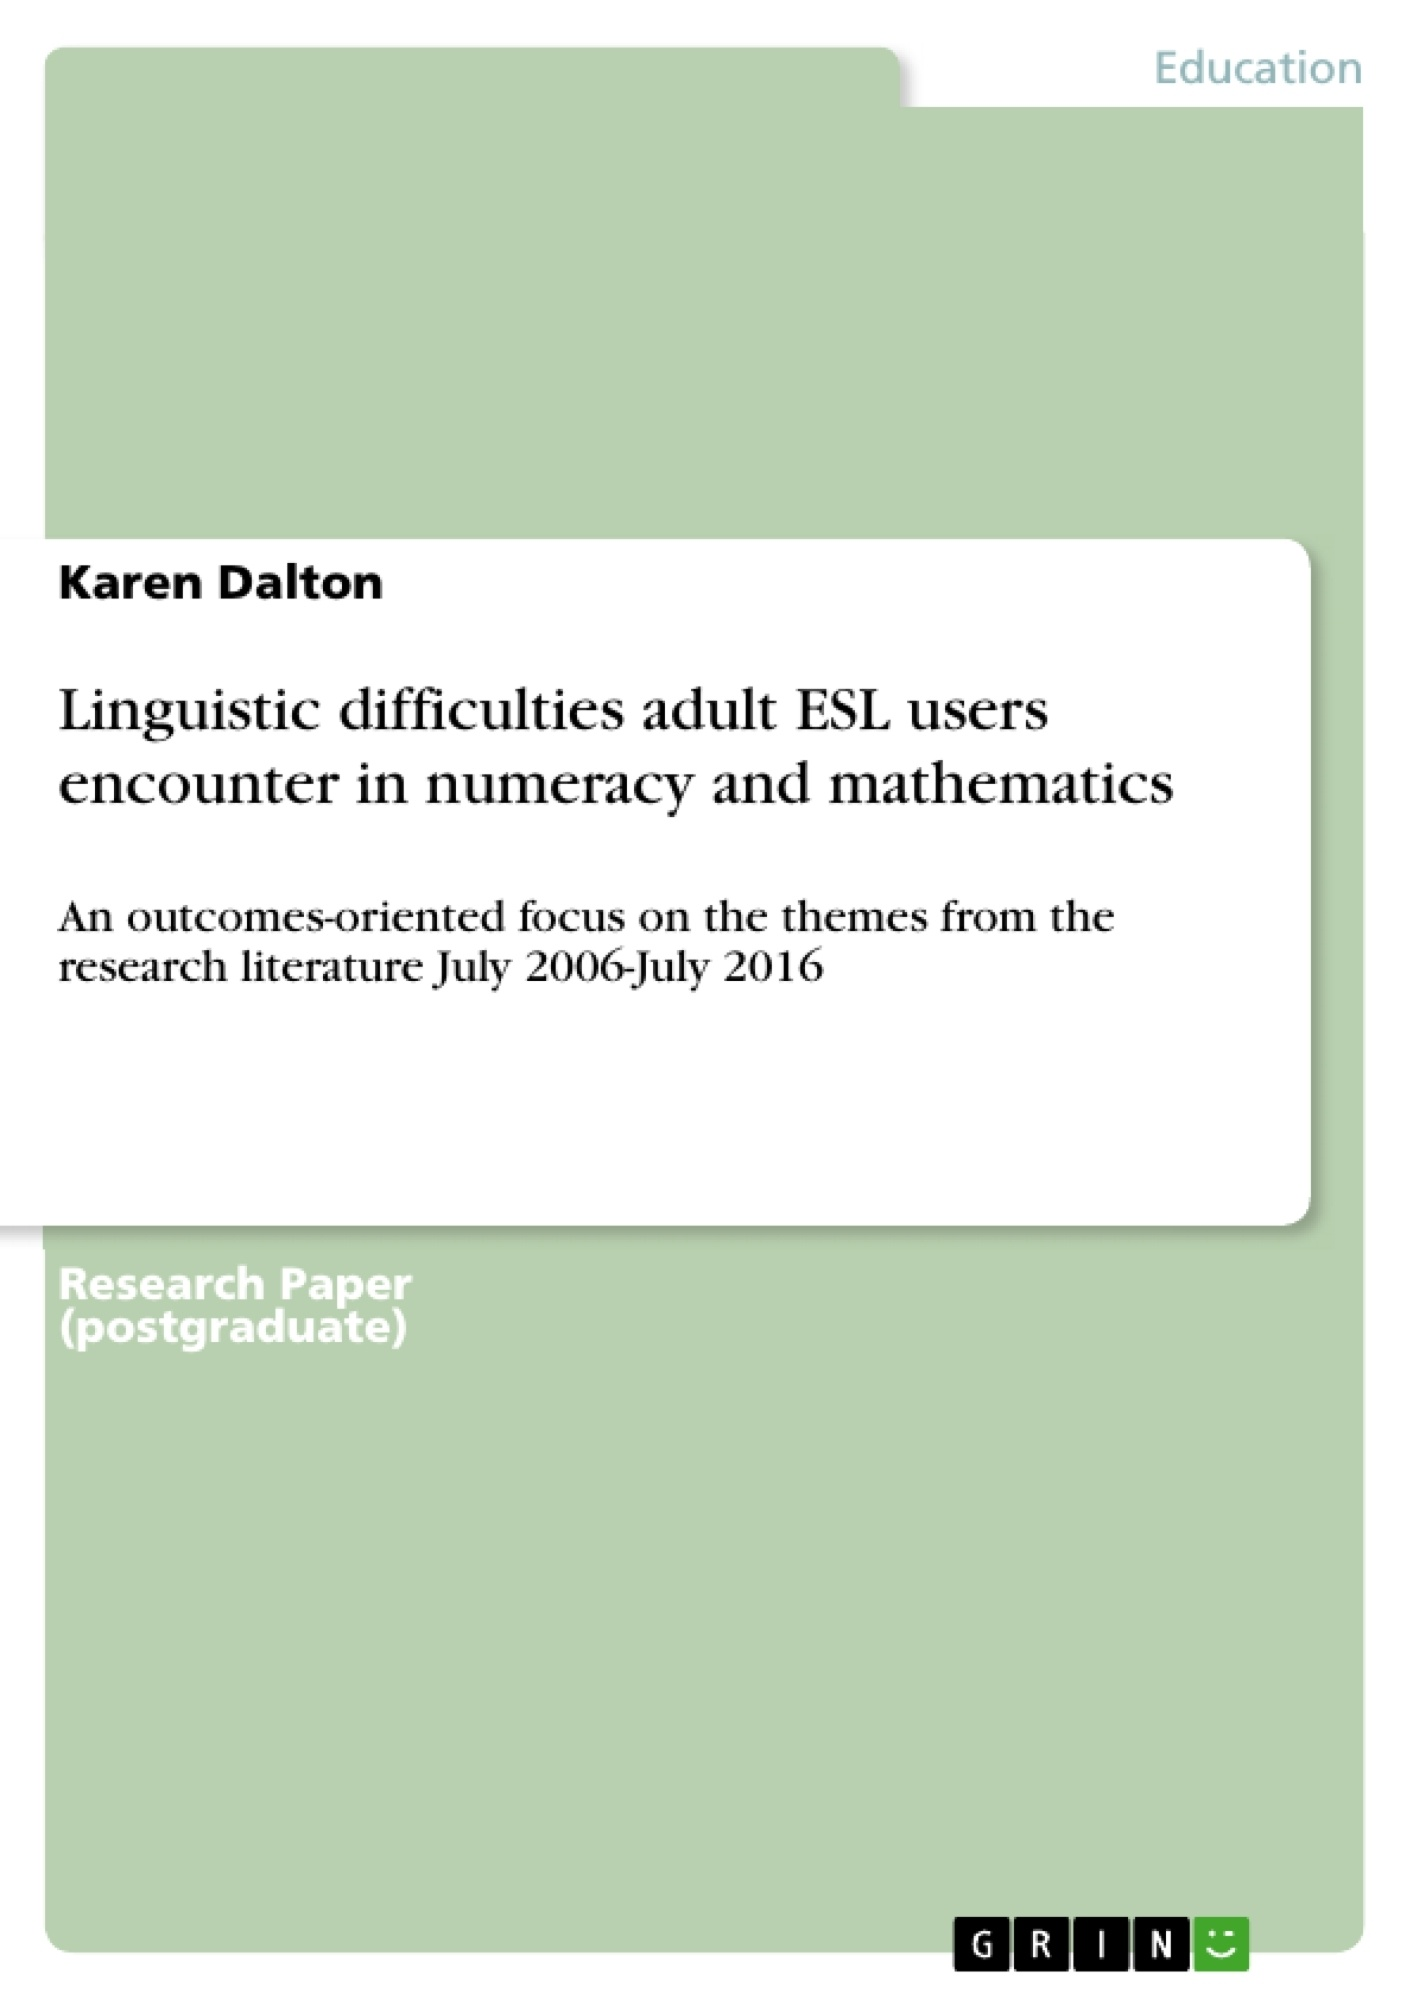 Title: Linguistic difficulties adult ESL users encounter in numeracy and mathematics